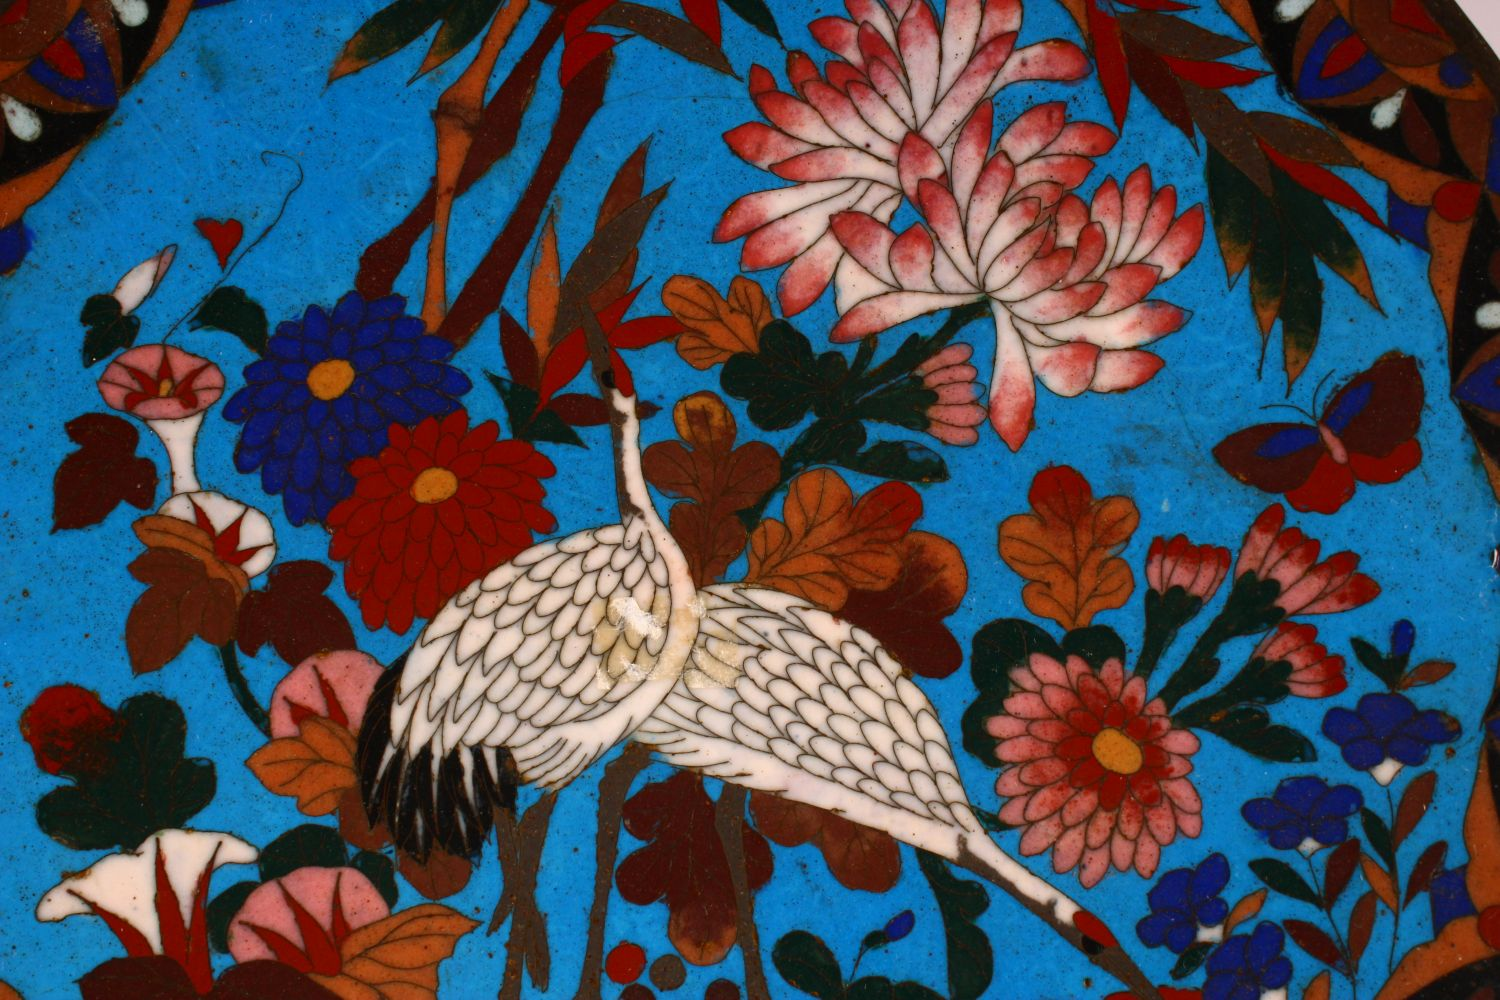 A JAPANESE CLOISONNE DISH, decorated with cranes and flowers, 30cm diameter. - Image 2 of 3